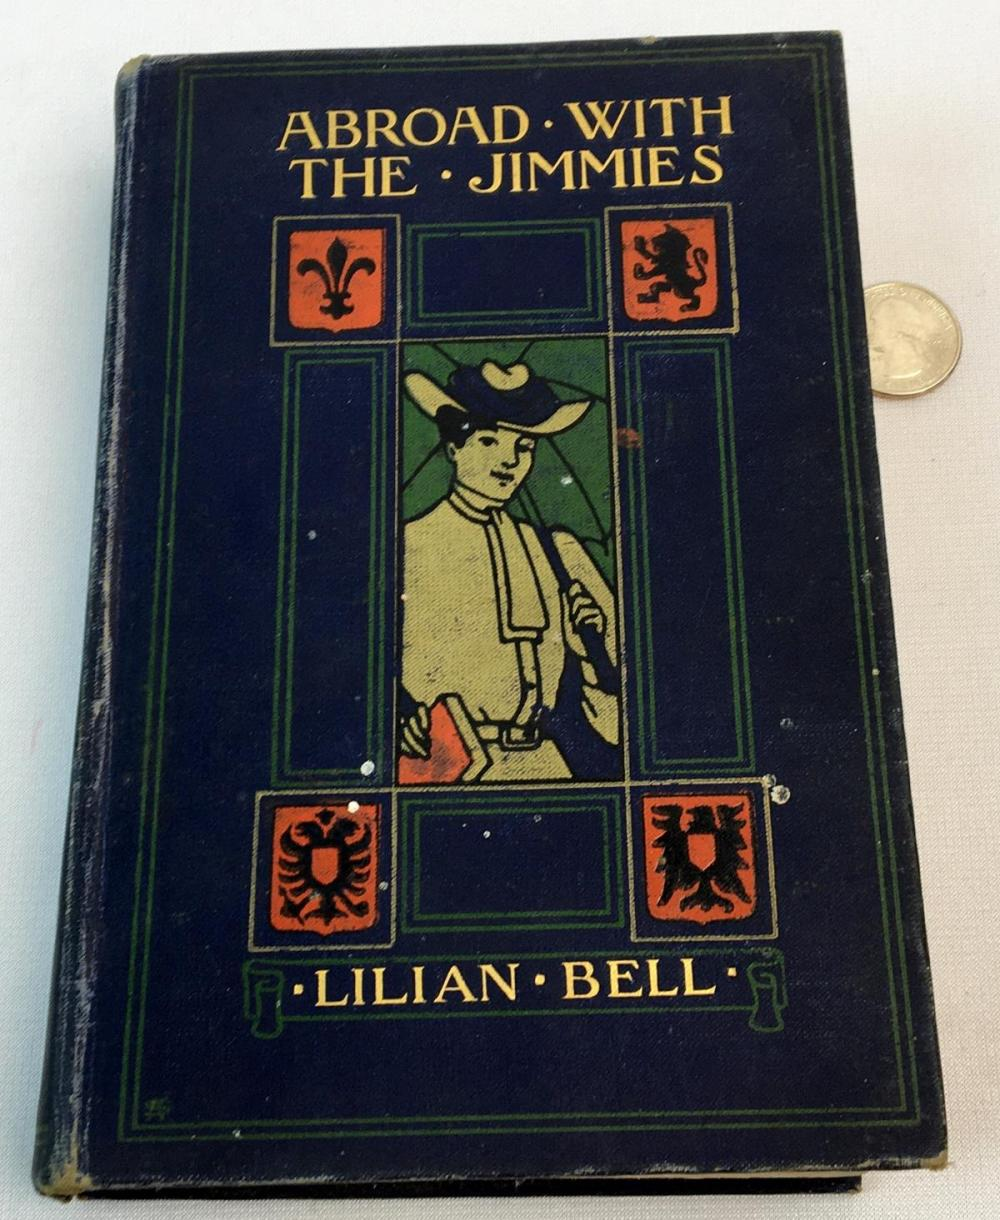 1902 Abroad with The Jimmies by Lilian Bell FIRST EDITION